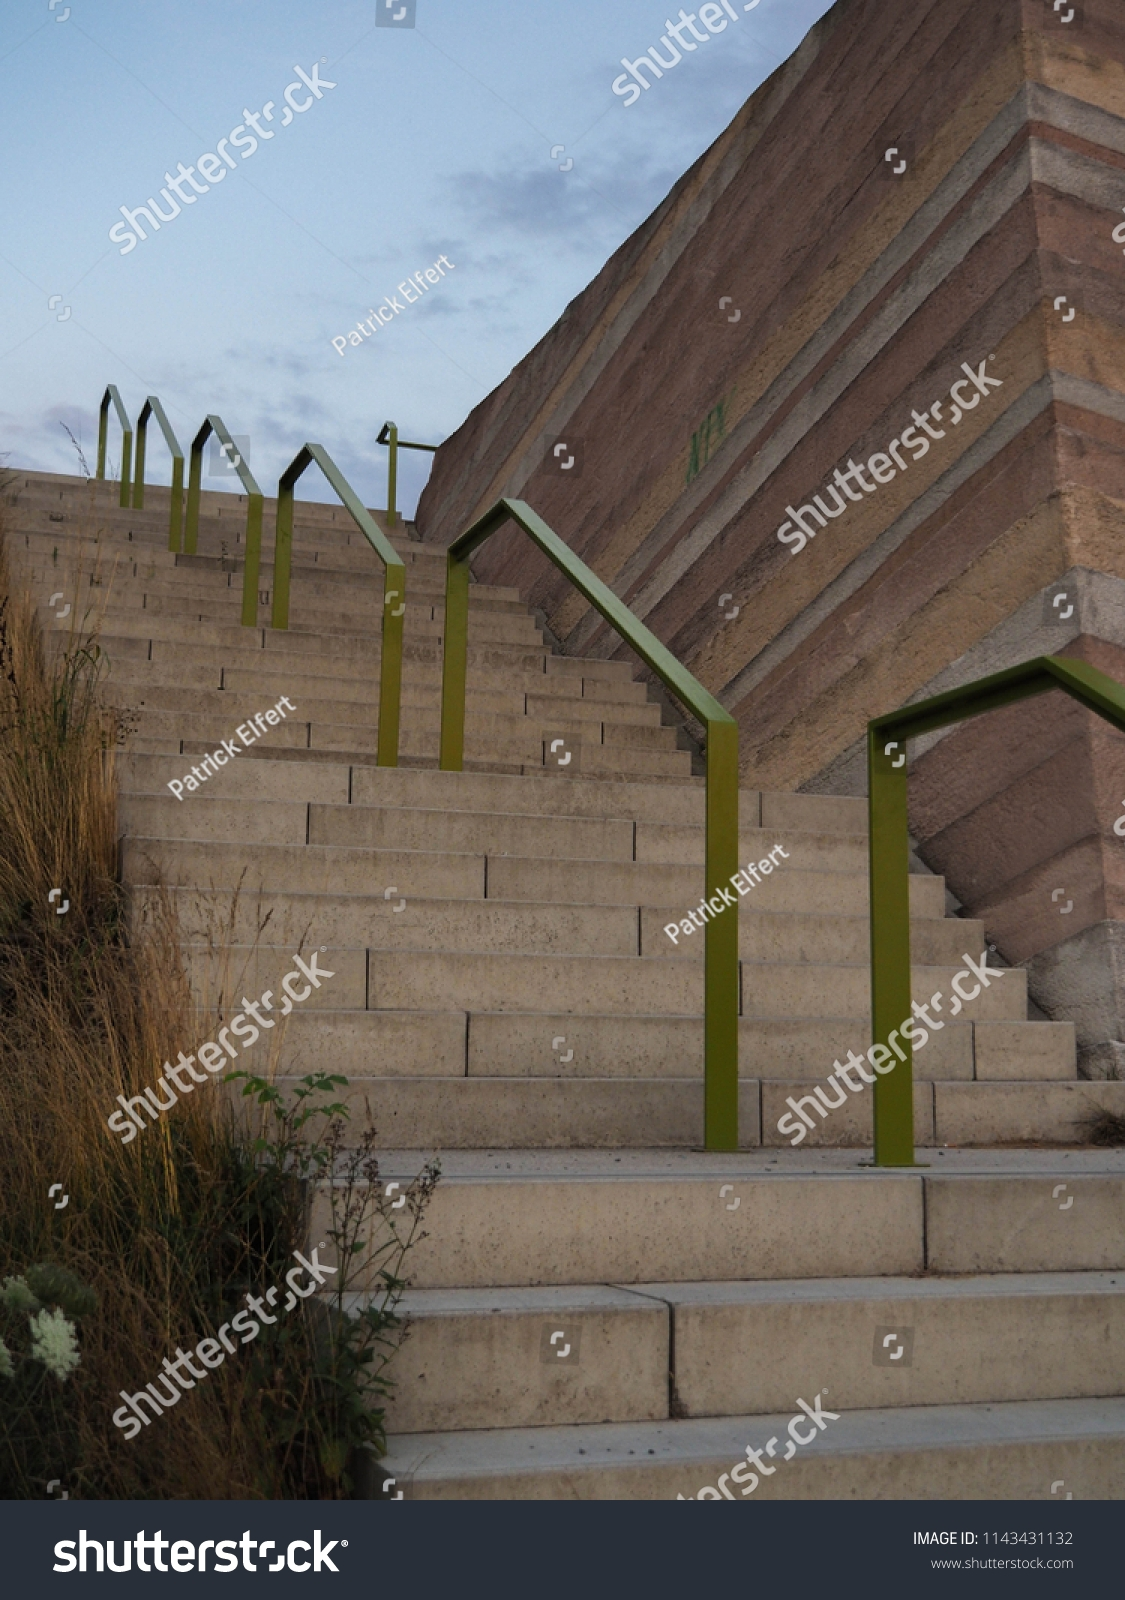 Outdoor Stairs Rustic Railing Buildings Landmarks Stock Image | Rustic Handrails For Stairs | Modern | Country Style | Antique Wooden Stair | Basement | Interior